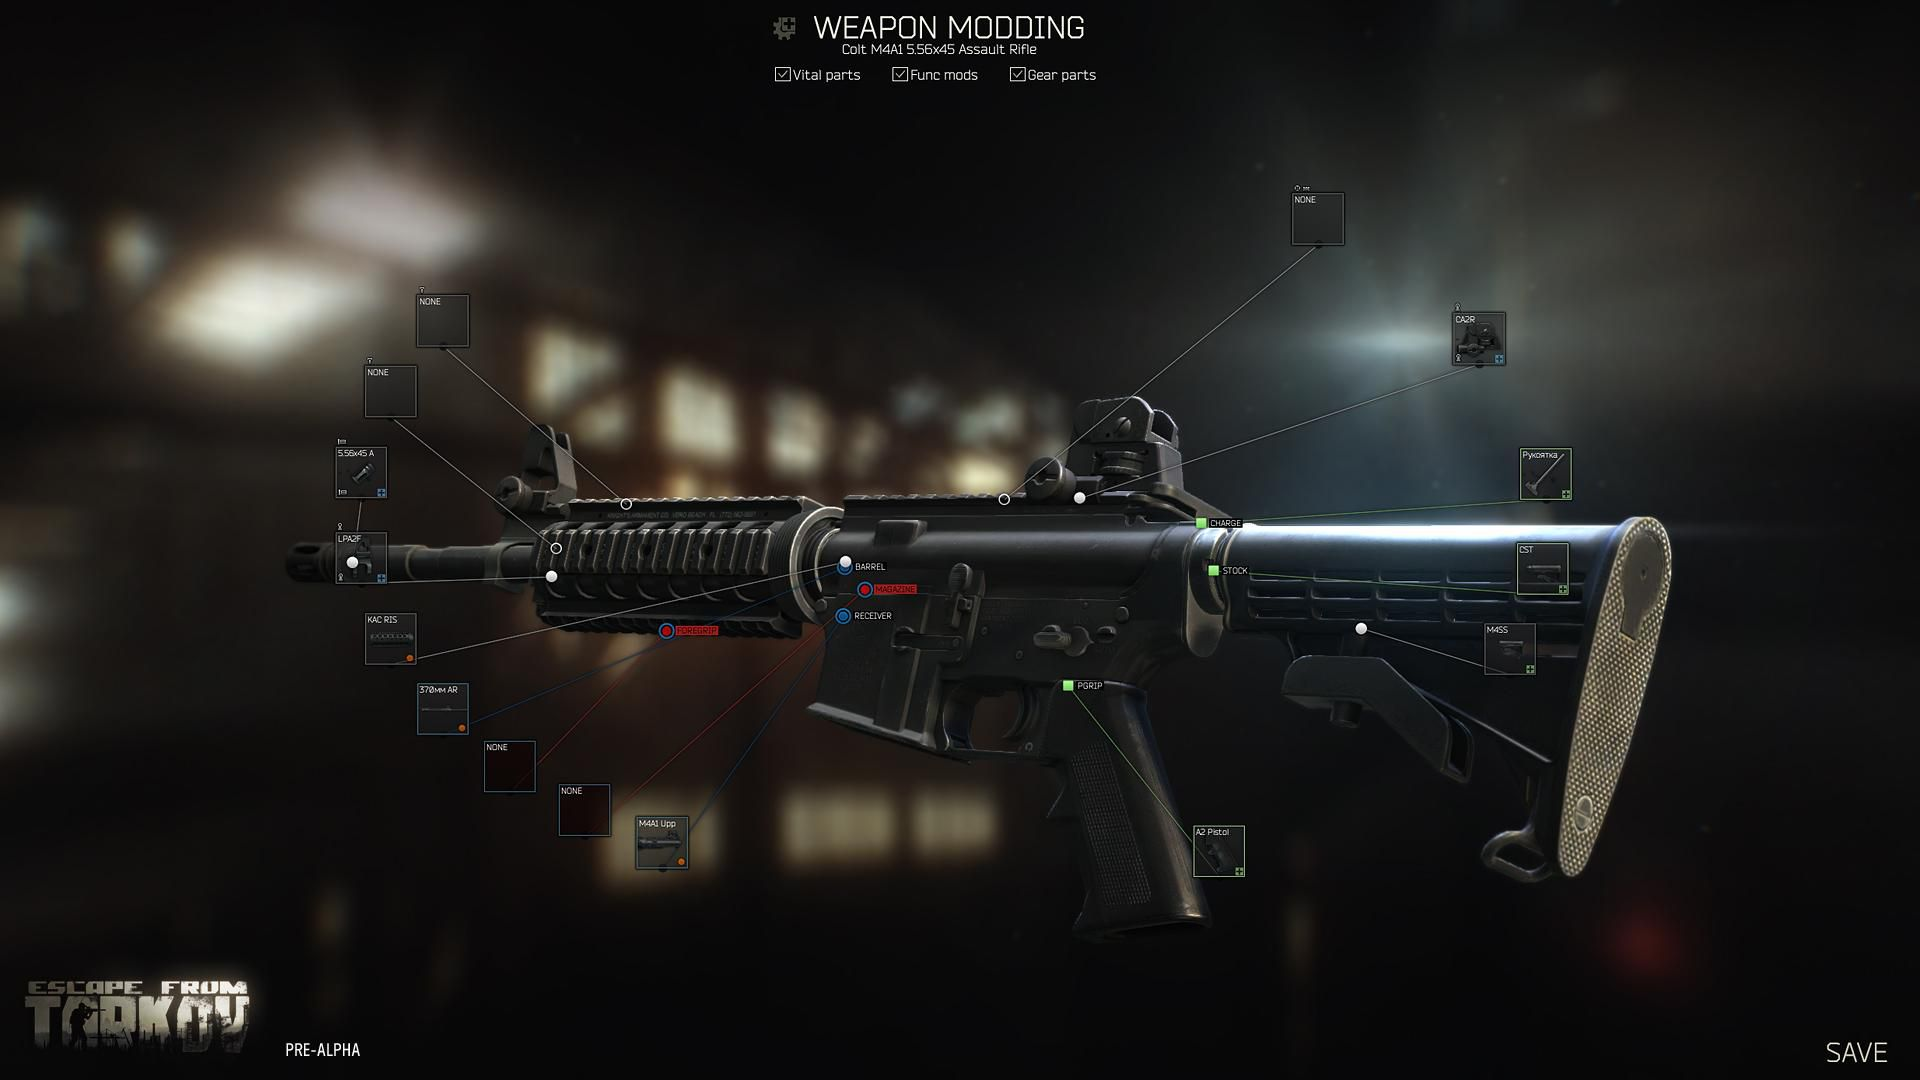 escape-from_tarkov_weapon_modding